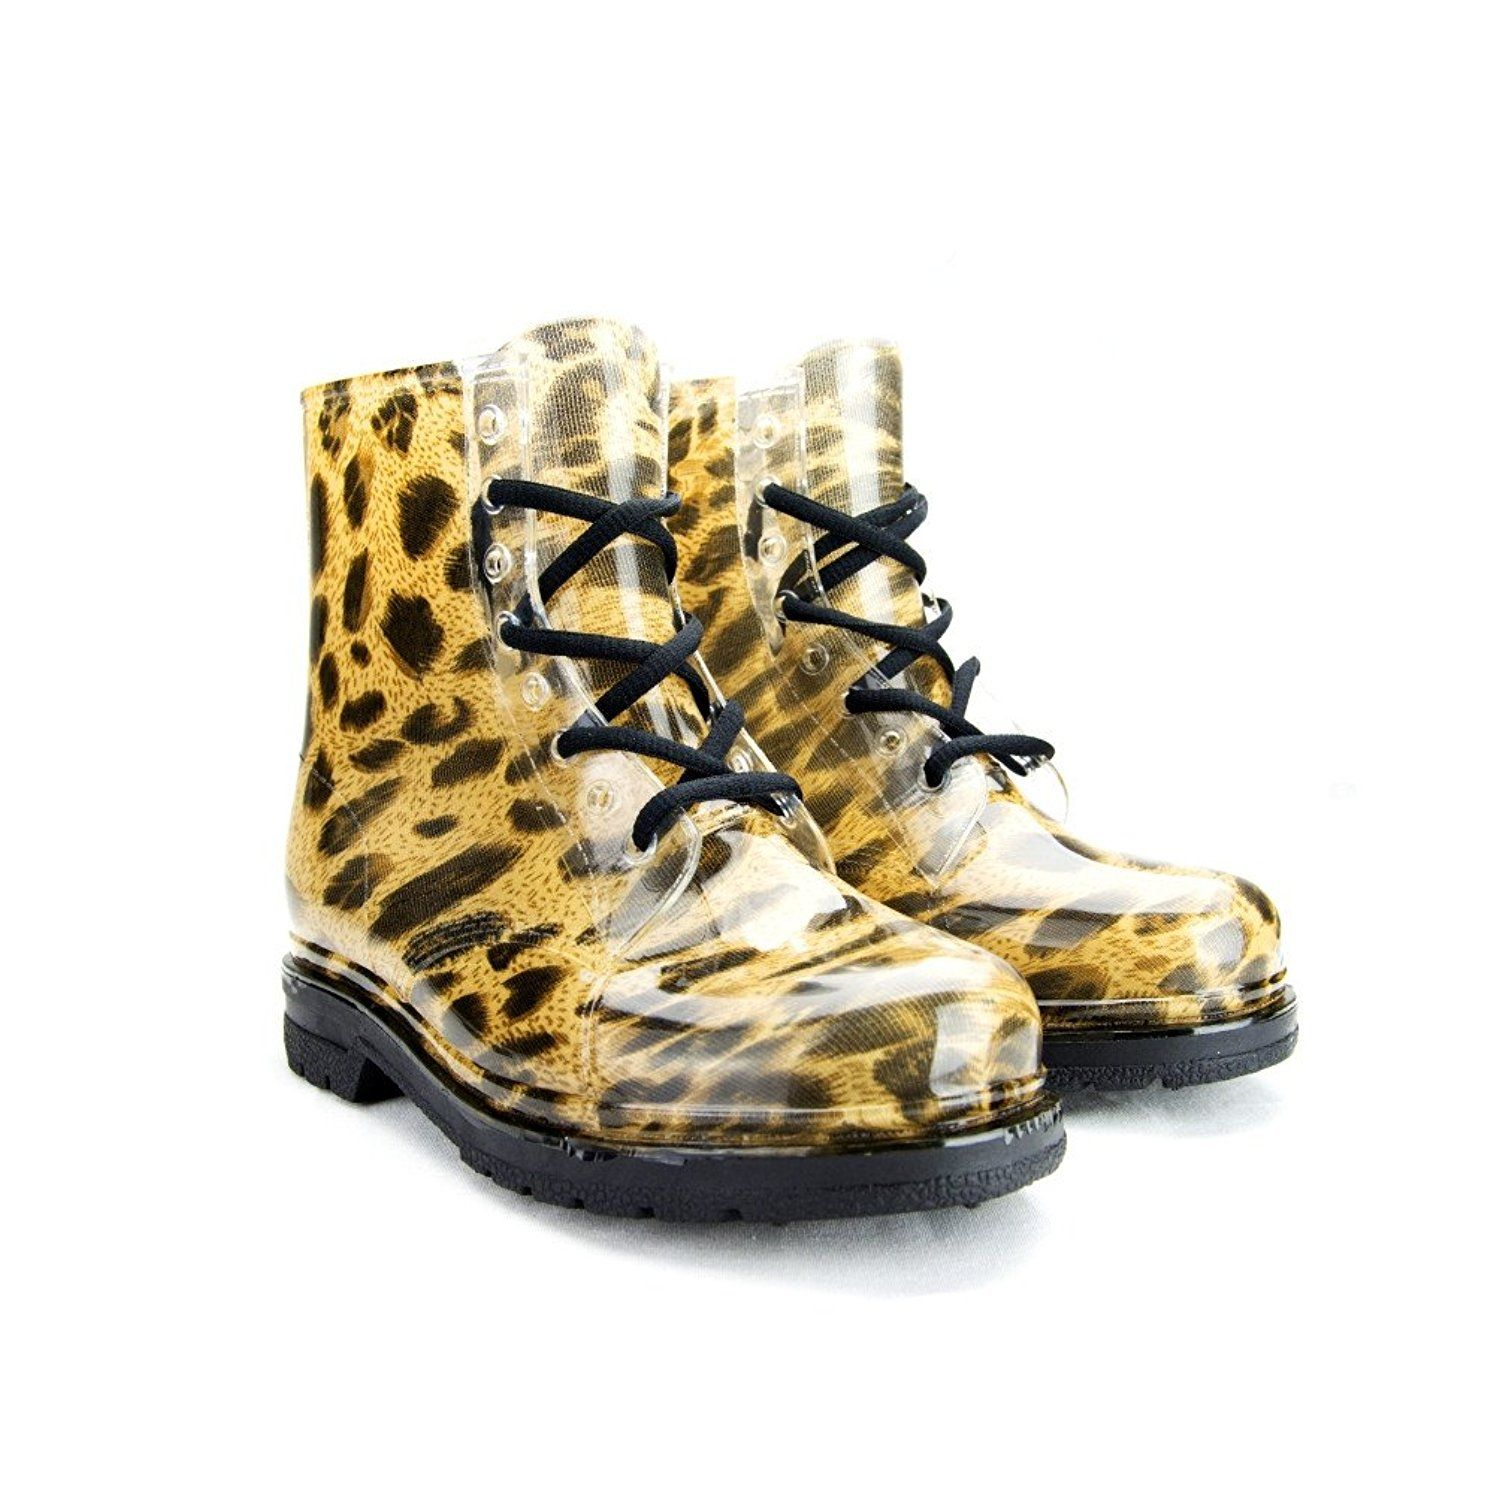 Women's Ankle Flat Leopard Transparent Clear Jelly Martin Rain Boots (9 B(M) US)